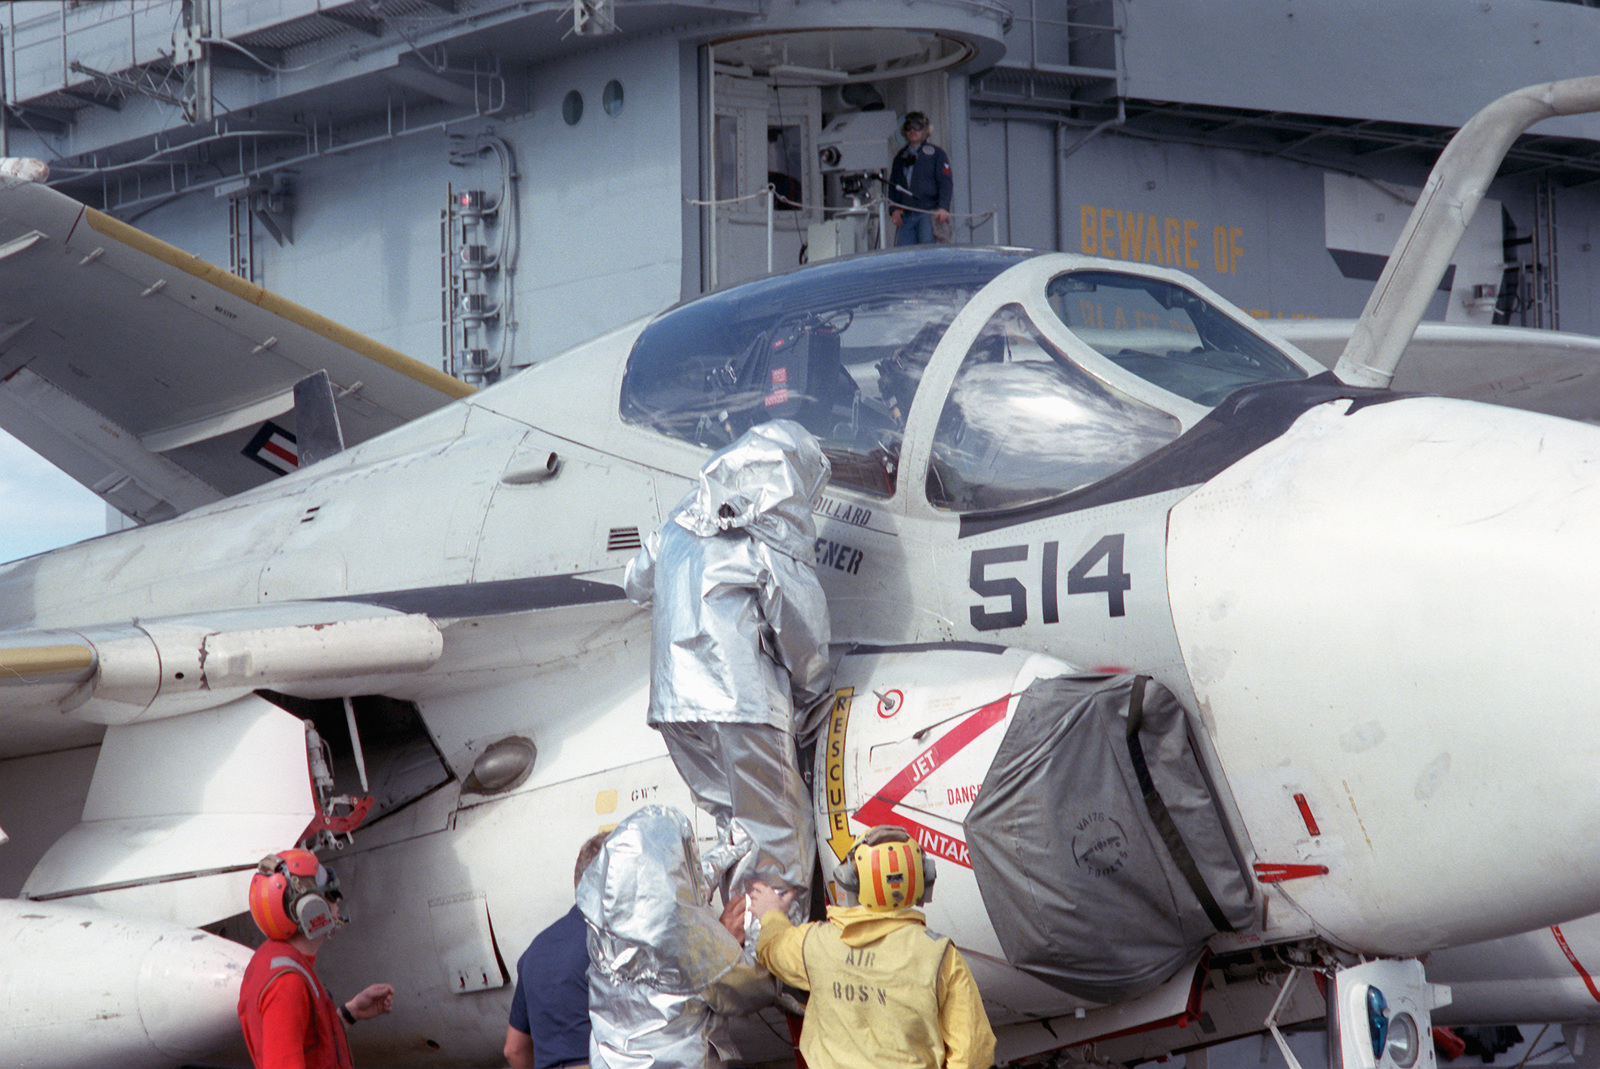 A firefighter wearing a proximity suit climbs onto an A-6E Intruder aircraft during a general quarters drill aboard the nuclear-powered aircraft carrier USS THEODORE ROOSEVELT (CVN 71)